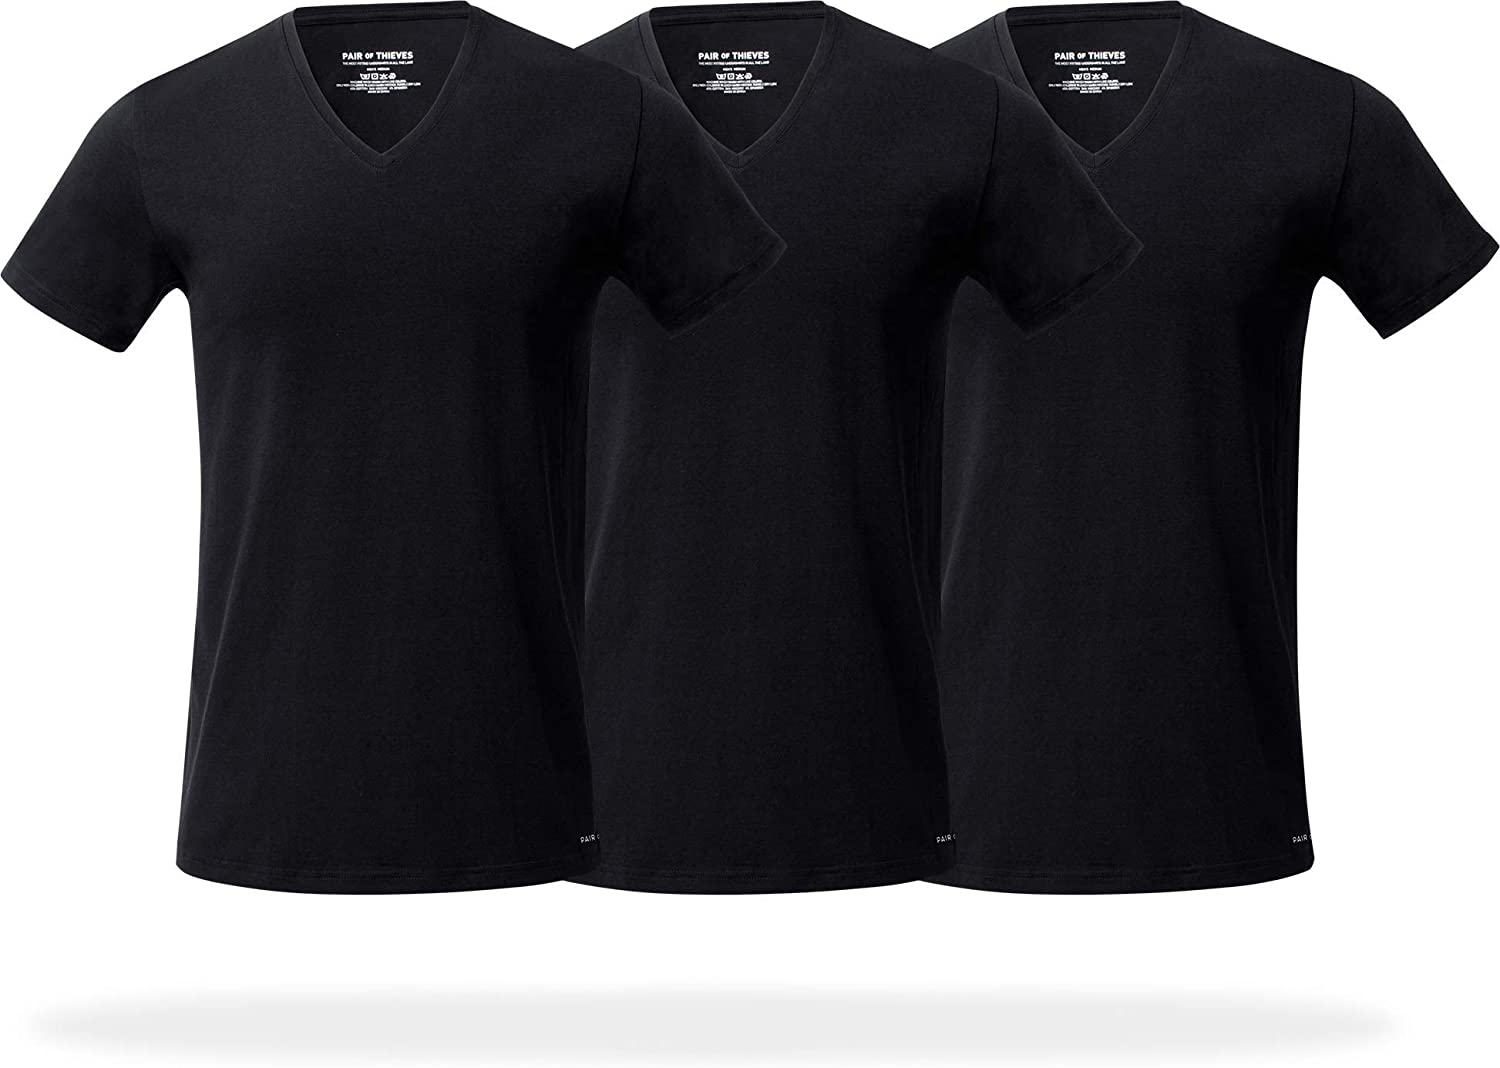 Pair of Thieves At the price of surprise Slim Fit V-Neck T-Shirts for 3 Tag Ranking TOP3 Pack Men